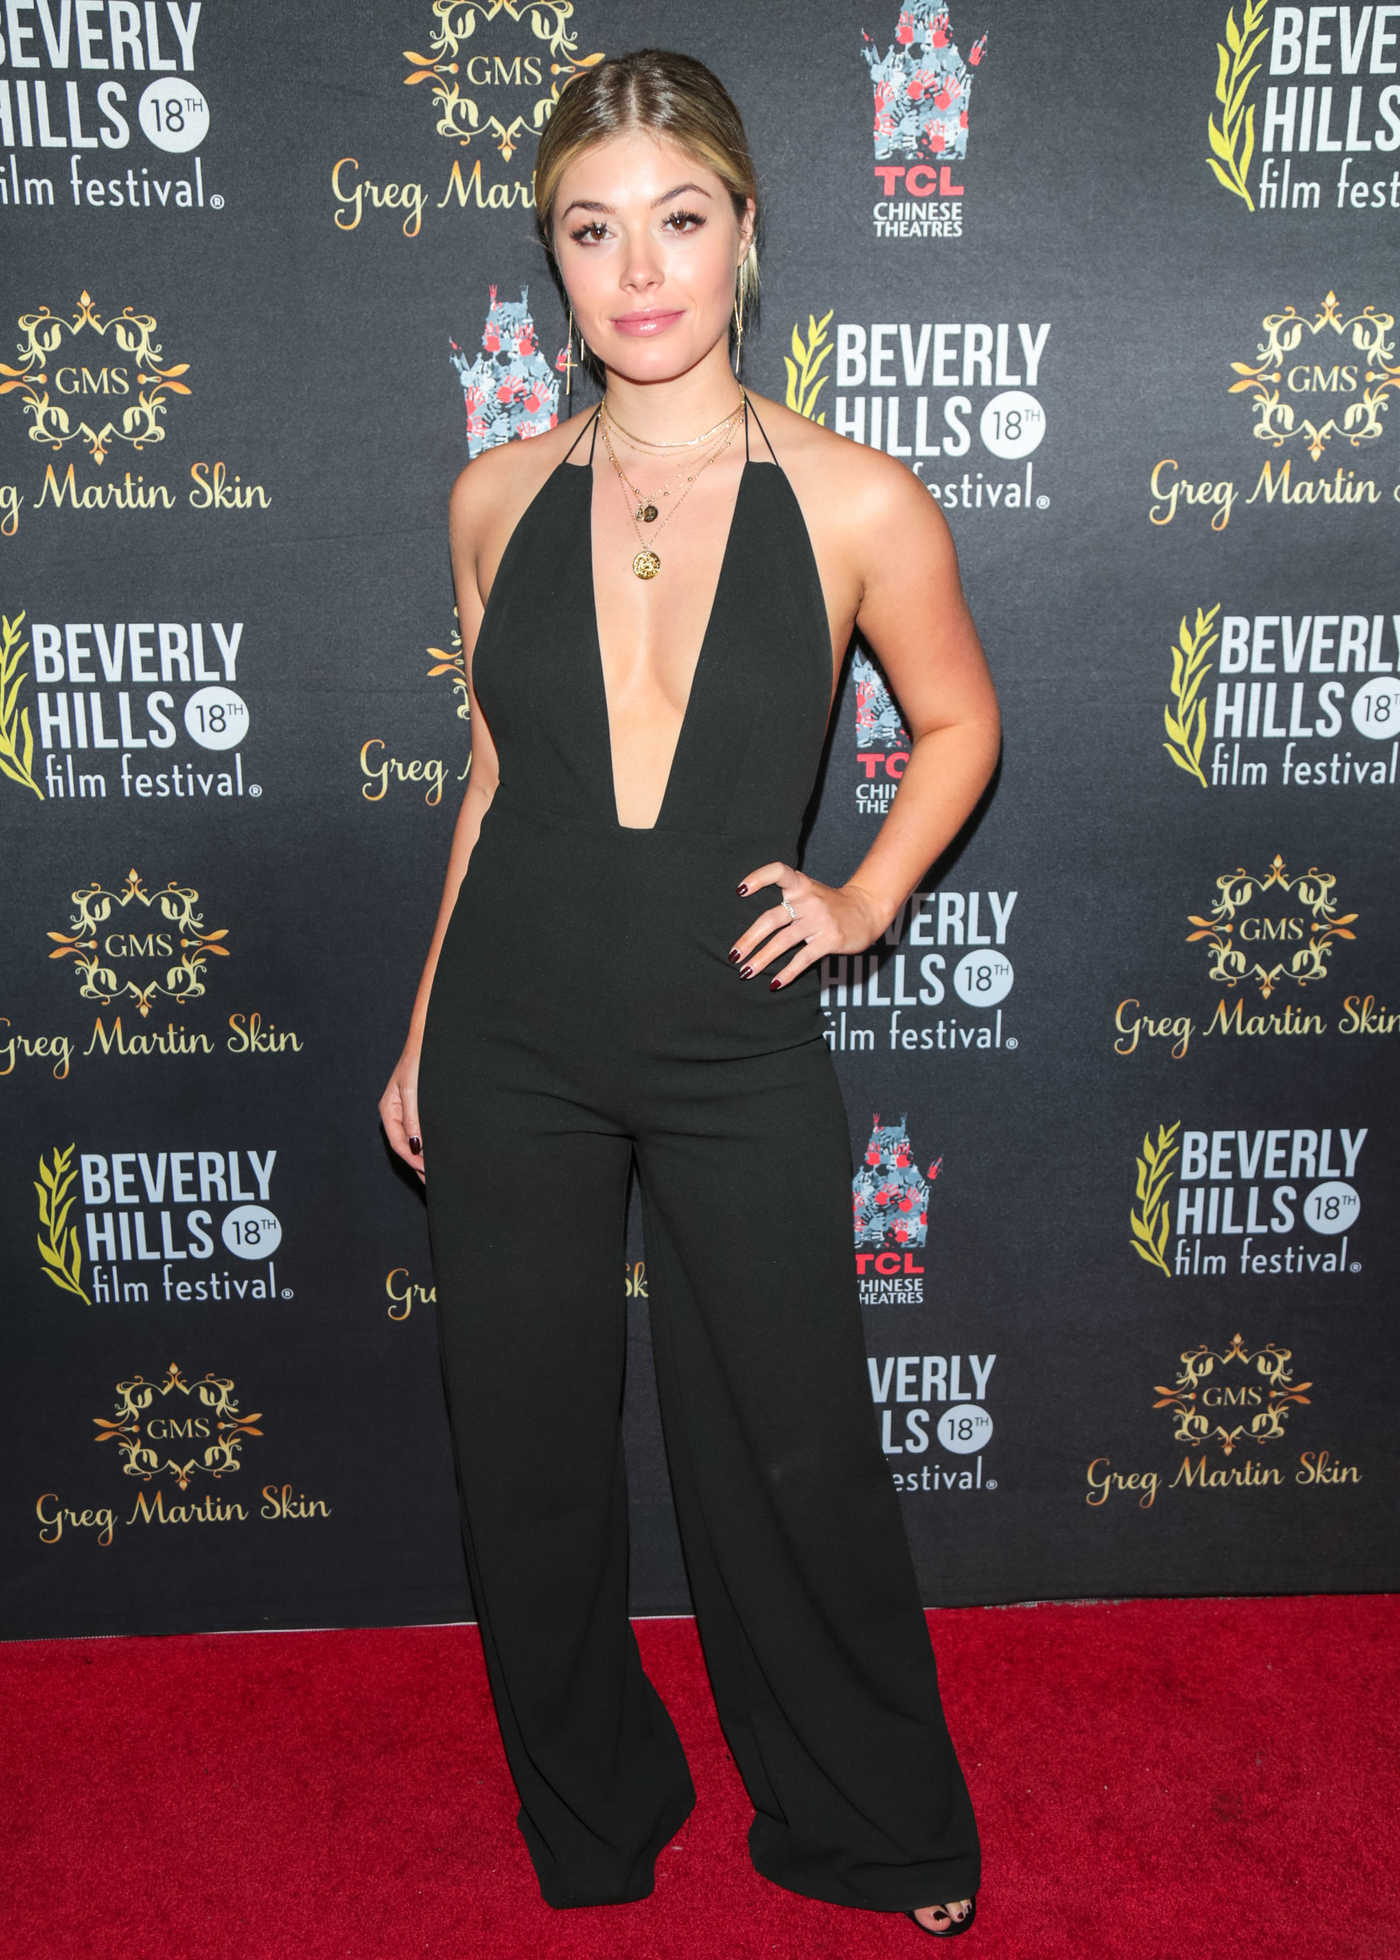 Kristina Kane at the 18th Annual International Beverly Hills Film Festival Opening Night Gala in Beverly Hills 04/05/2018